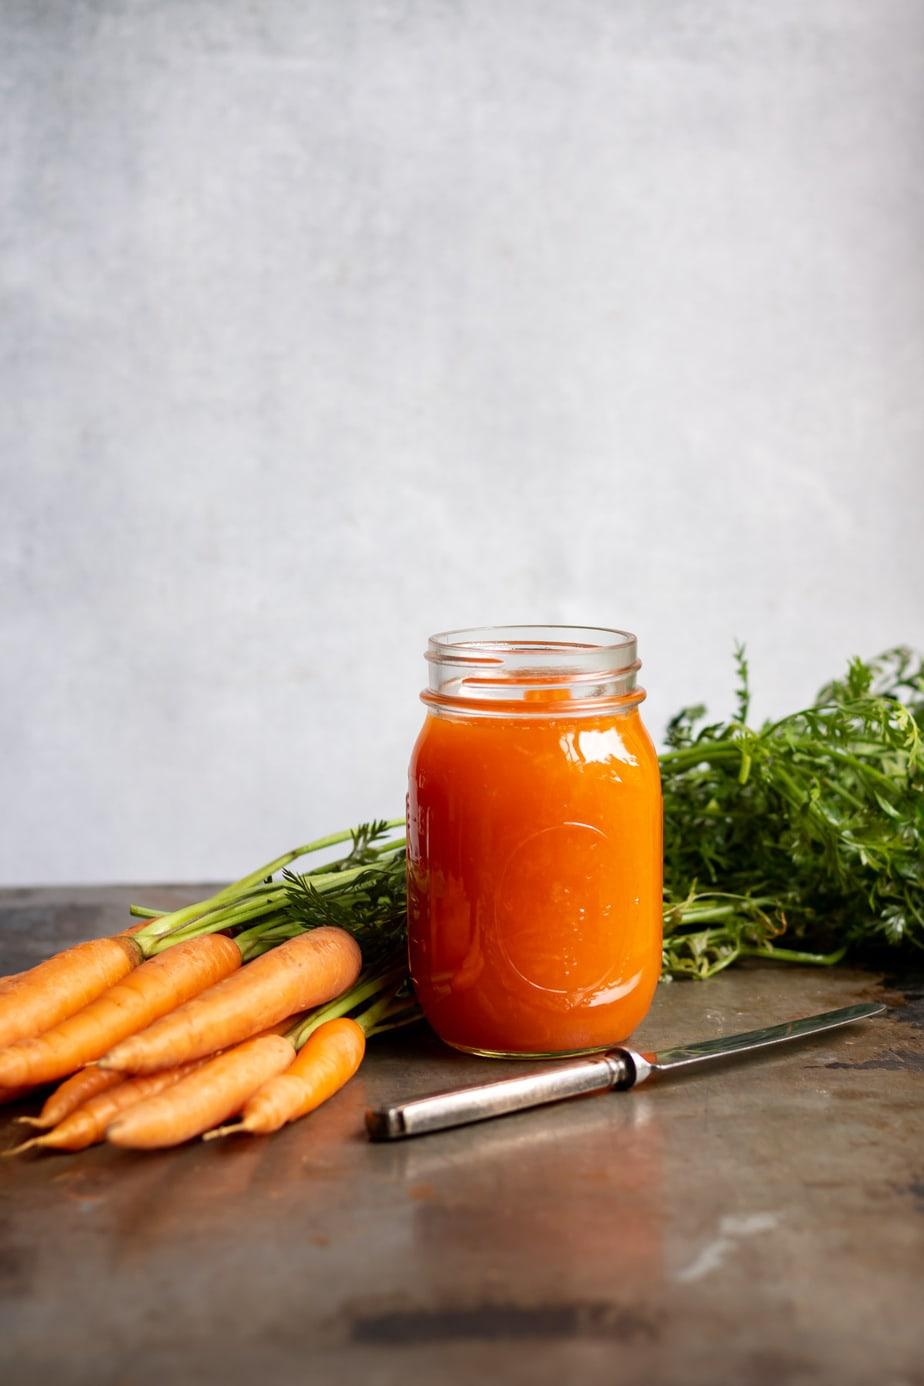 A jar of jam in front of a bunch of carrots.